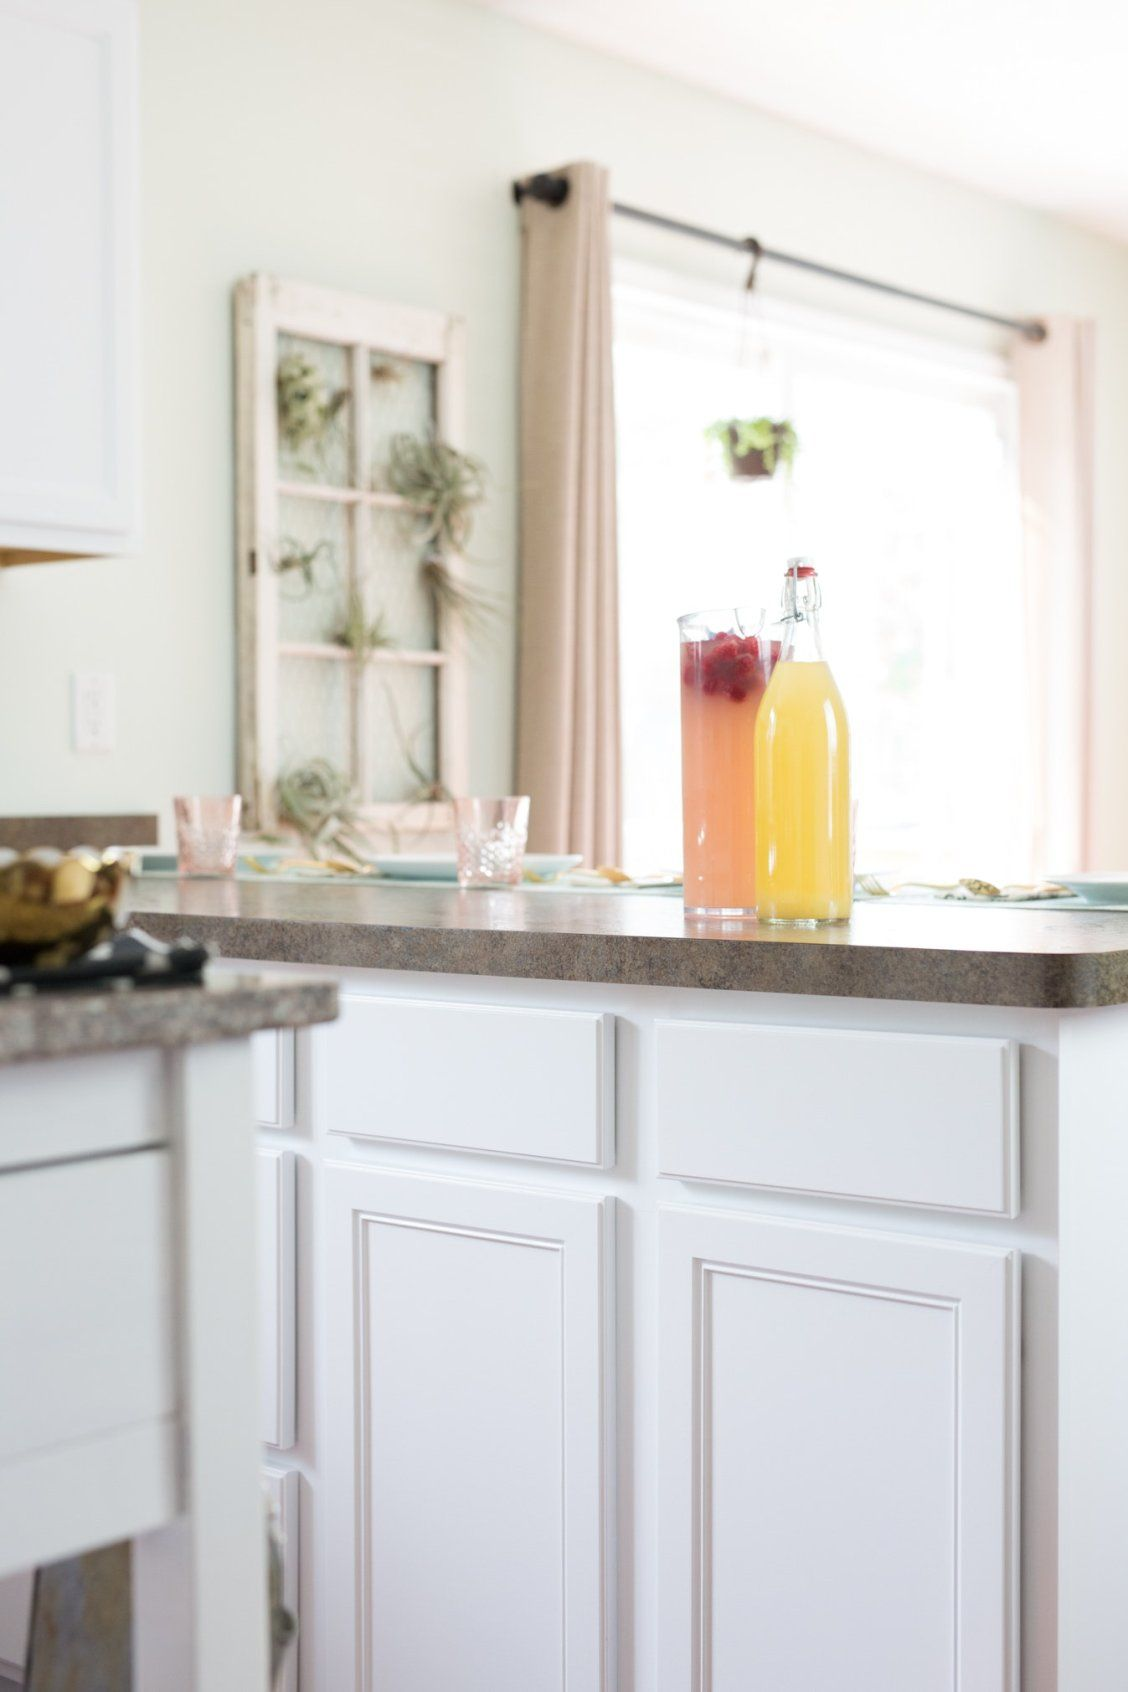 How To Clean Painted Wood Cabinets Clean Kitchen Cabinets